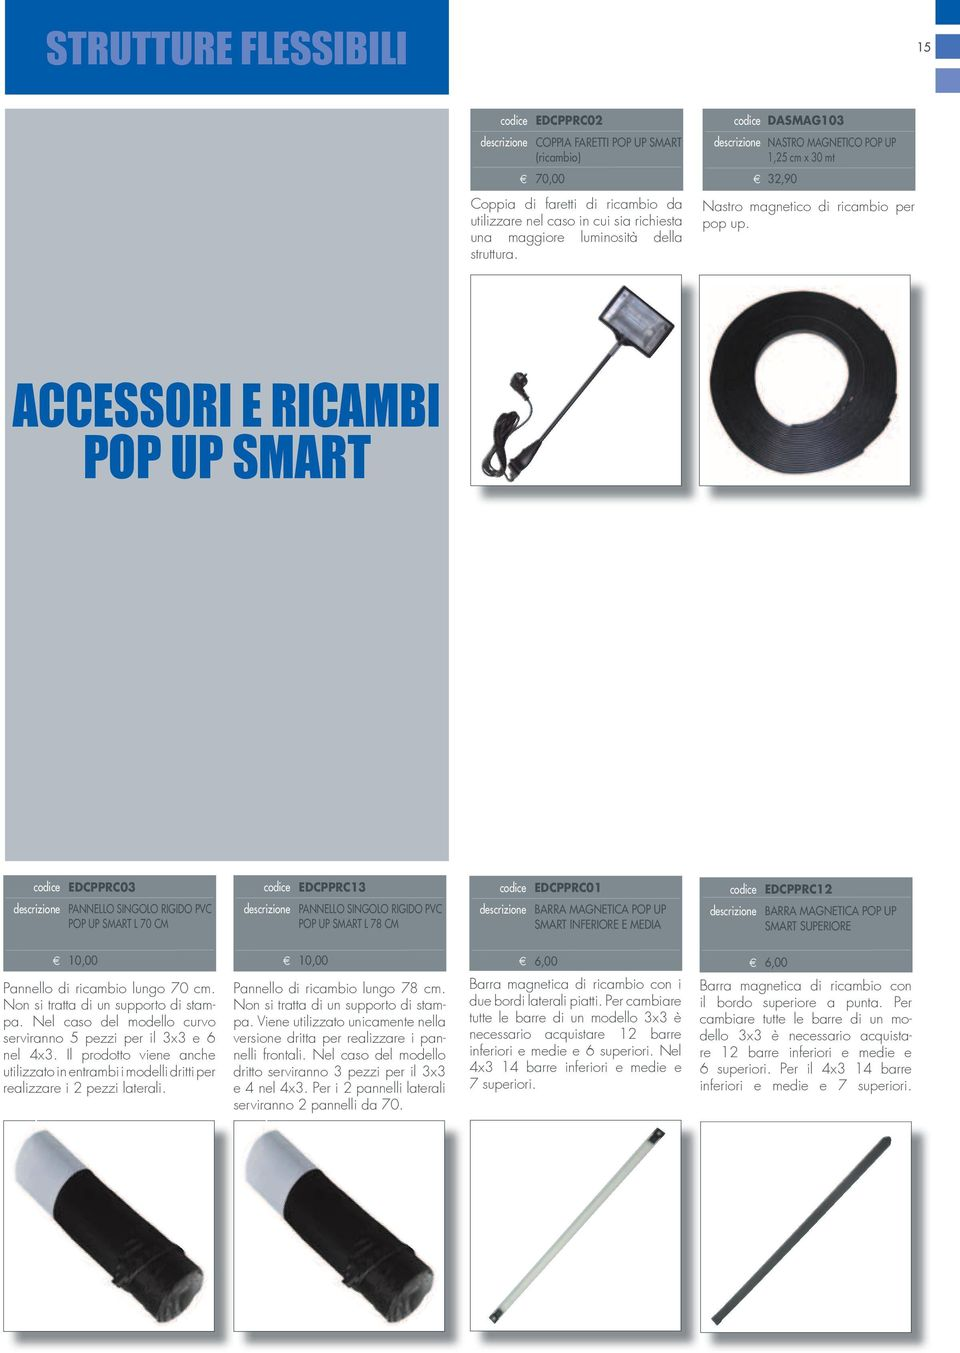 ACCESSORI E RICAMBI POP UP SMART codice EDCPPRC03 descrizione PANNELLO SGOLO RIGIDO PVC POP UP SMART L 70 CM codice EDCPPRC13 descrizione PANNELLO SGOLO RIGIDO PVC POP UP SMART L 78 CM codice